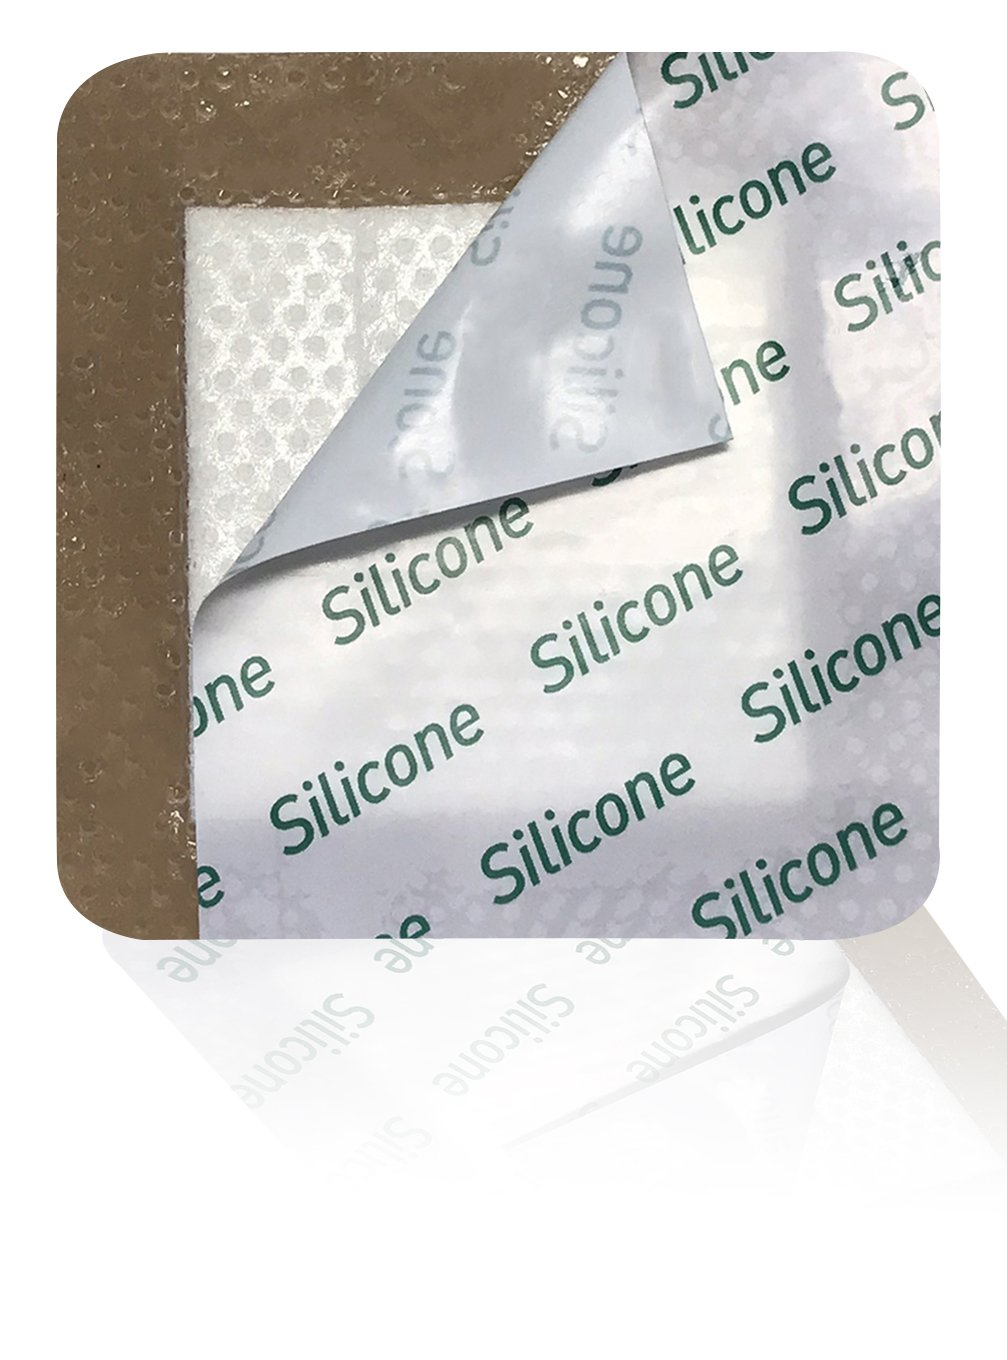 MedVanceTM Silicone - Bordered Silicone Adhesive Foam Dressing, Size 3''x3'', (1.8''x1.8'' pad), Box of 5 dressings